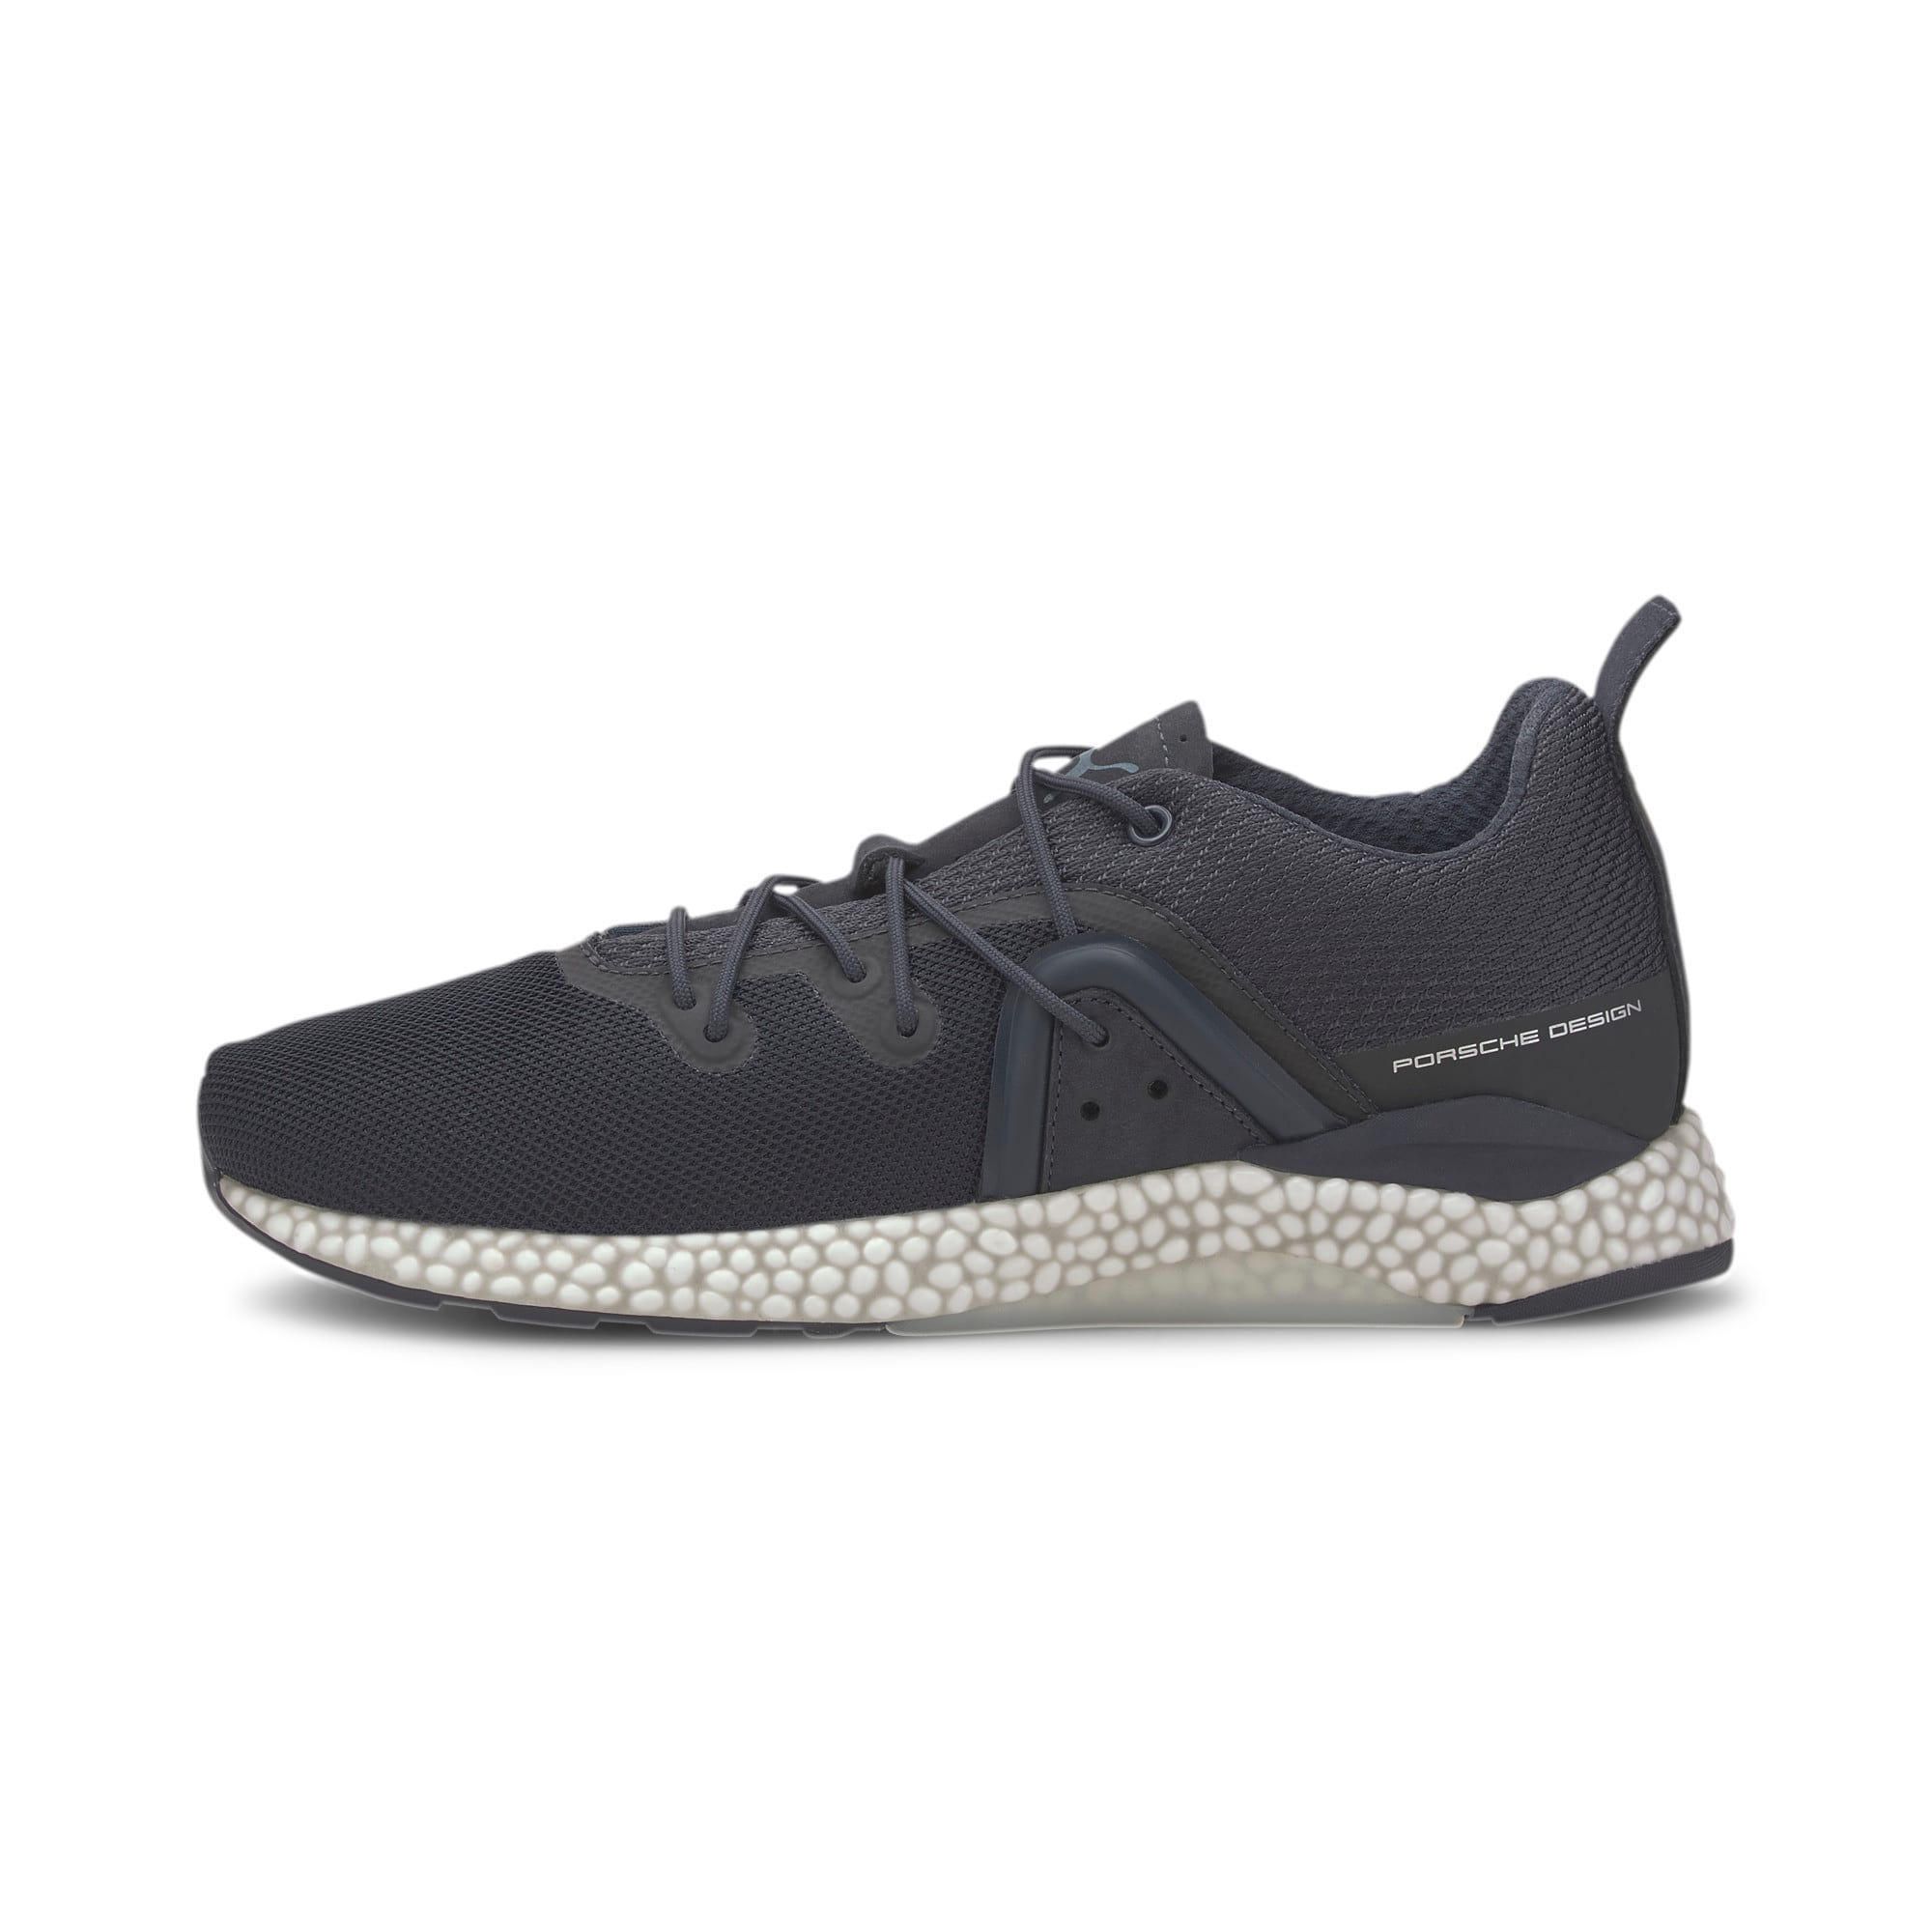 Thumbnail 1 of Porsche Design Hybrid Runner Men's Trainers, Navy Blazer-Navy Blazer, medium